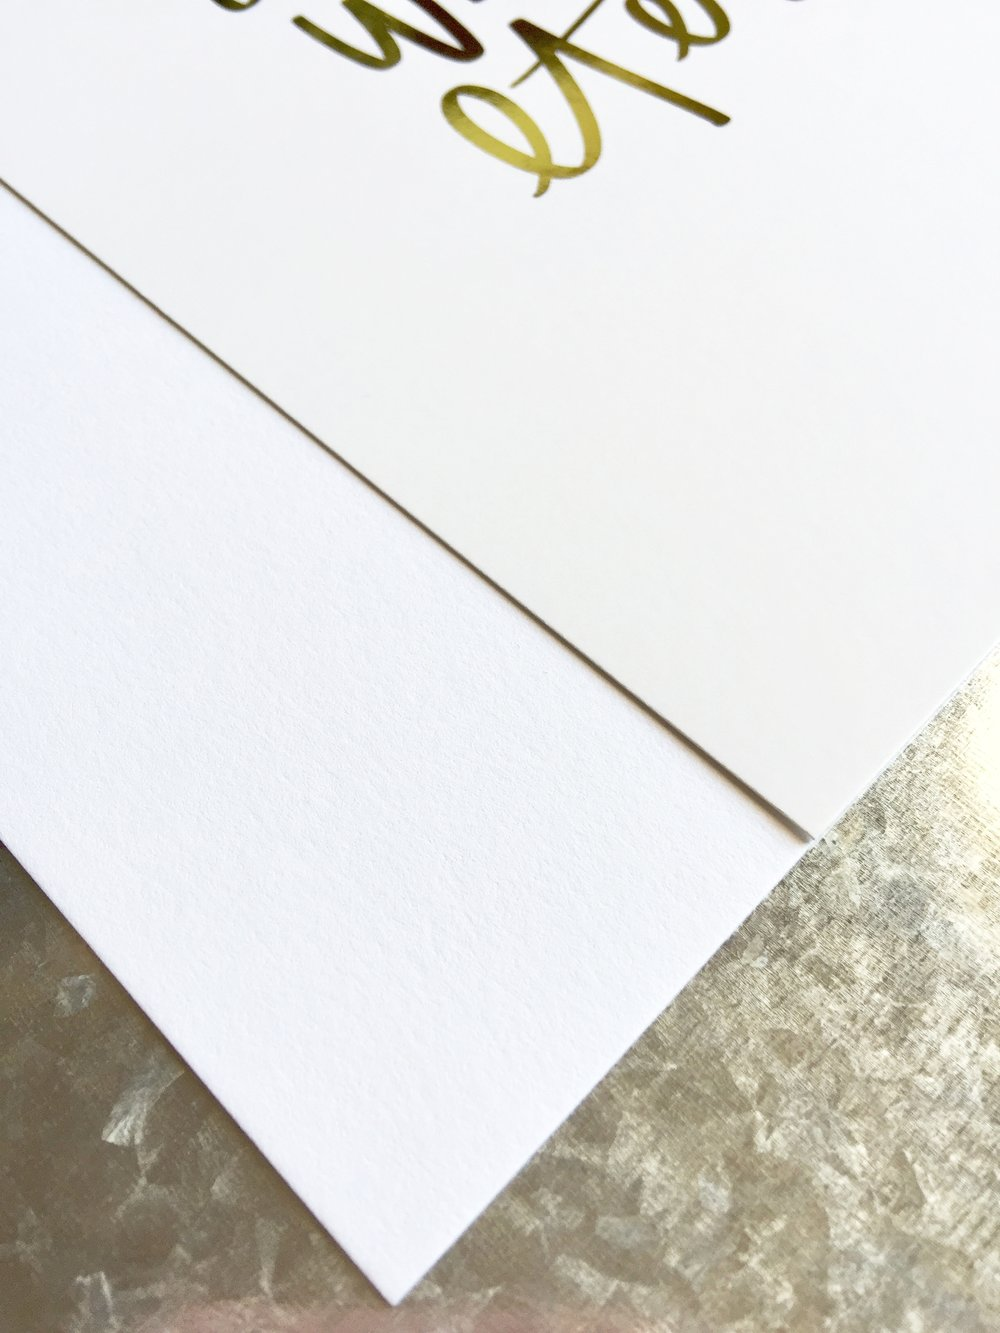 On the left, the paper our Classic Prints are printed on. On the right, our Gold Foil Prints.